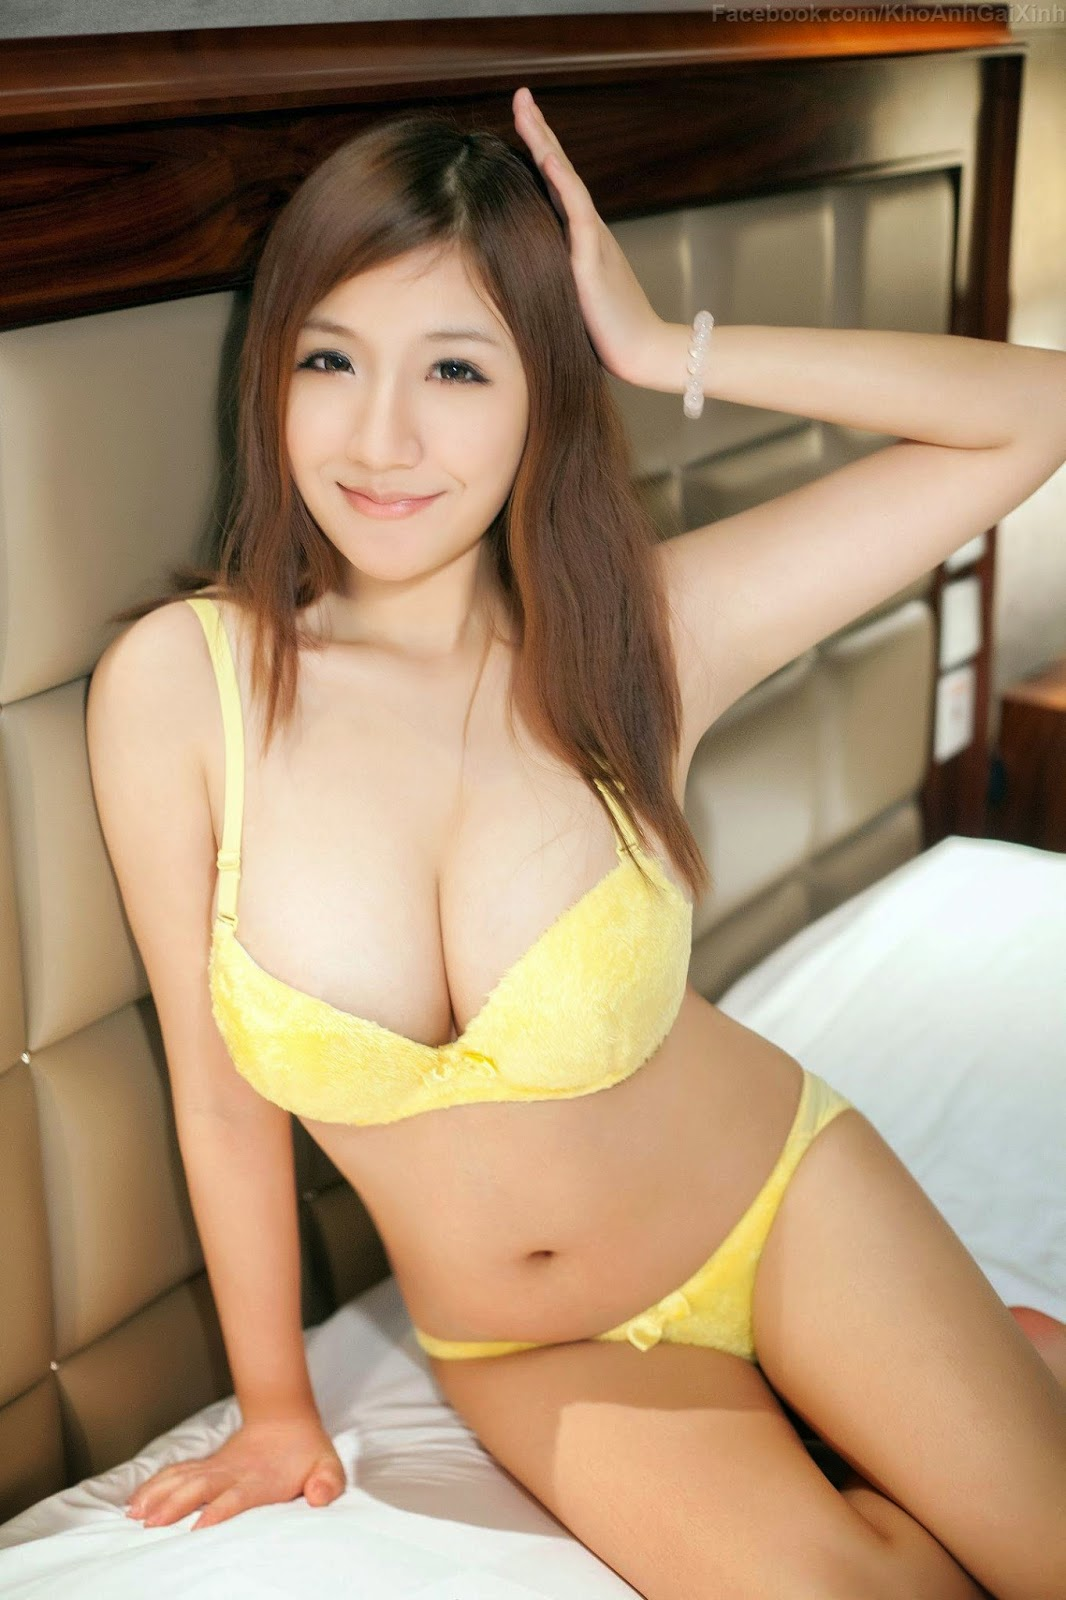 Hot Asian Teen Nude